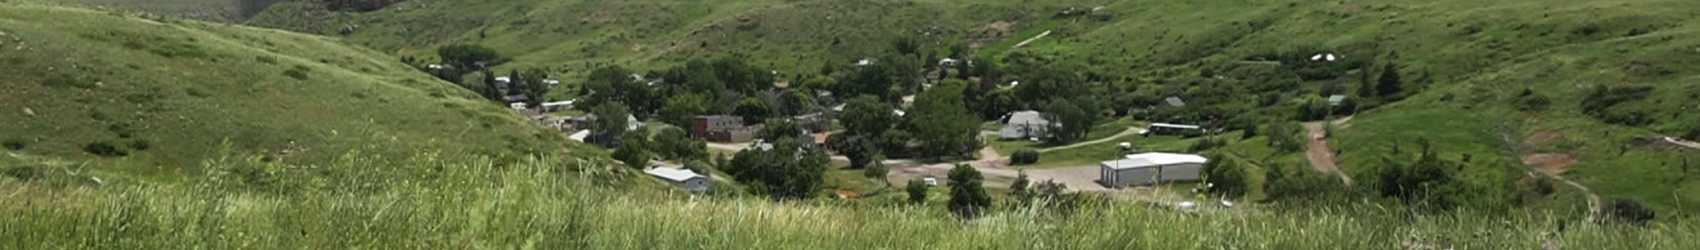 Former Coal Town